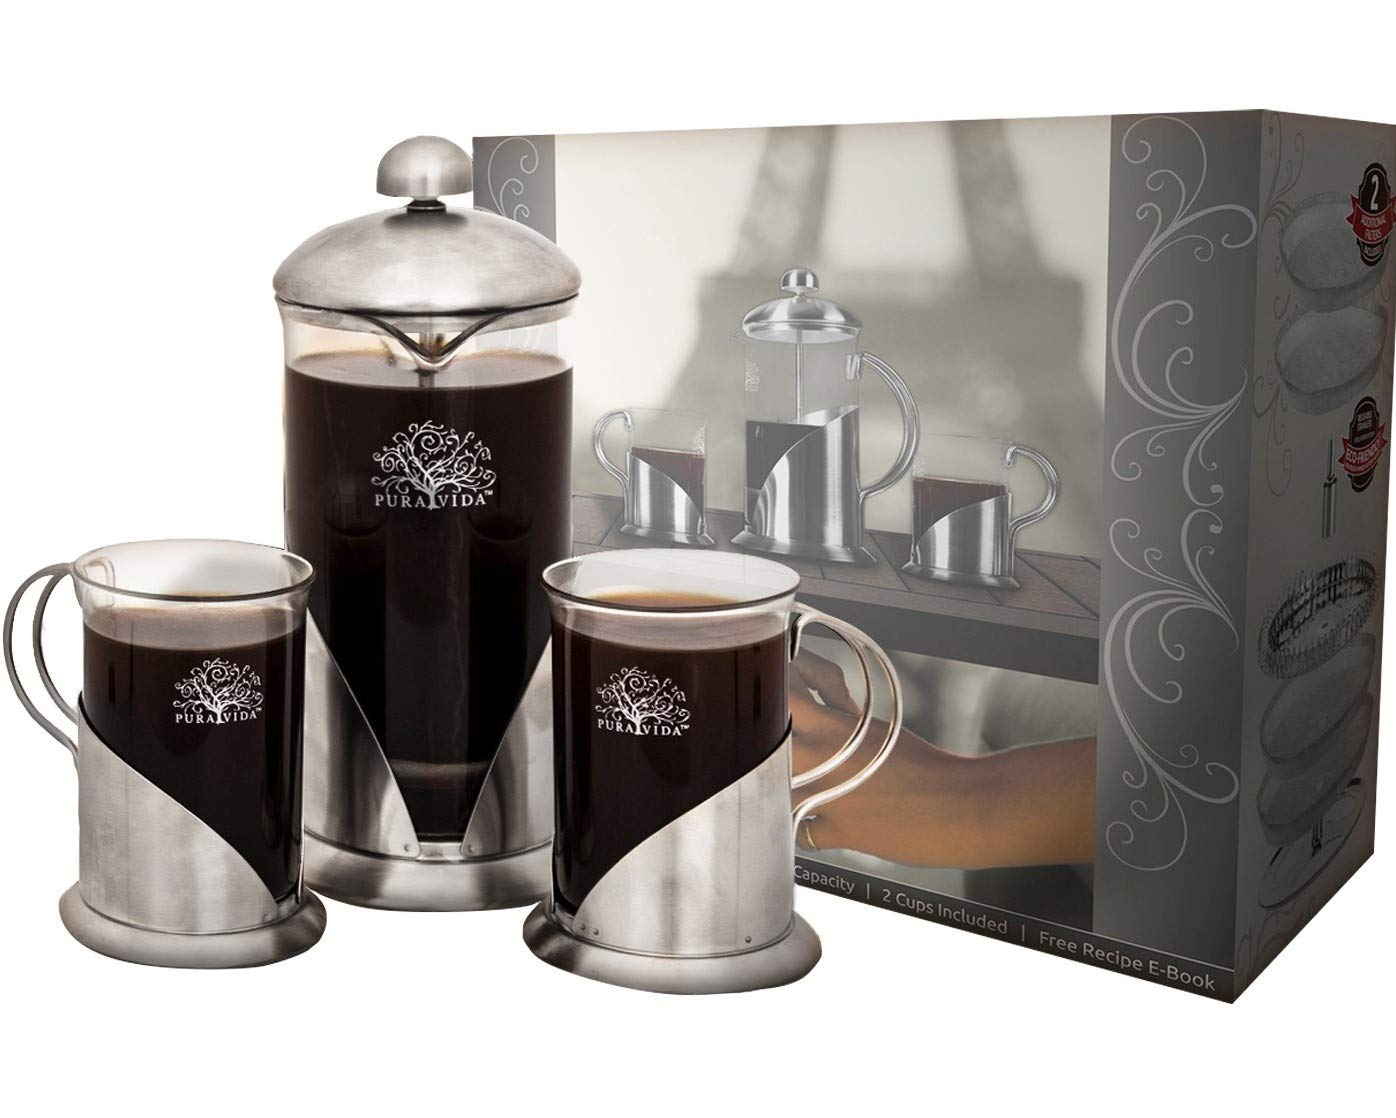 Pura Vida French Press Coffee Maker Set, 20 oz - 4 Level Filtration System - 2 Luxury Mugs - Heat Resistant Borosilicate Glass French Press with Durable 304 Stainless Steel - Tea Maker, 4 Cup by Pura Vida